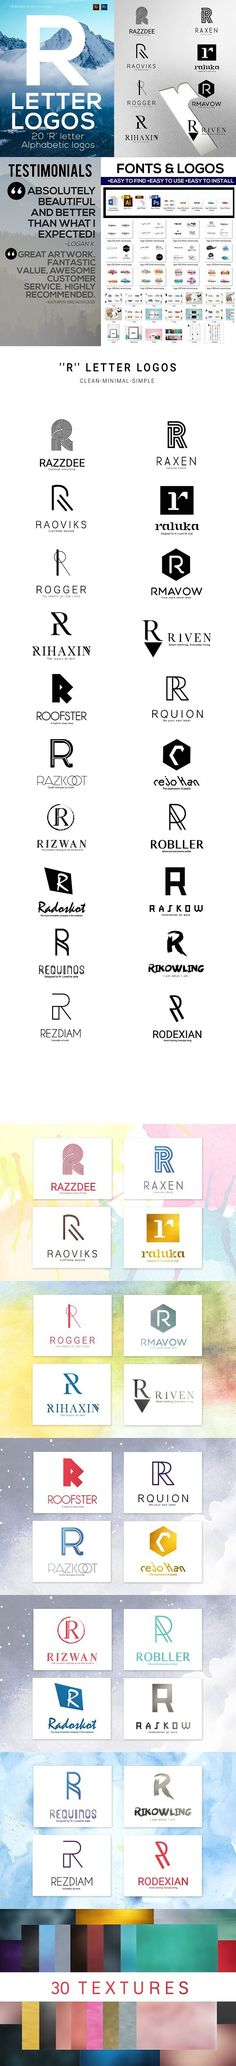 20 h letter alphabetic logos watercolor flowers watercolor 20 r letter alphabetic logos watercolor flowers stopboris Image collections